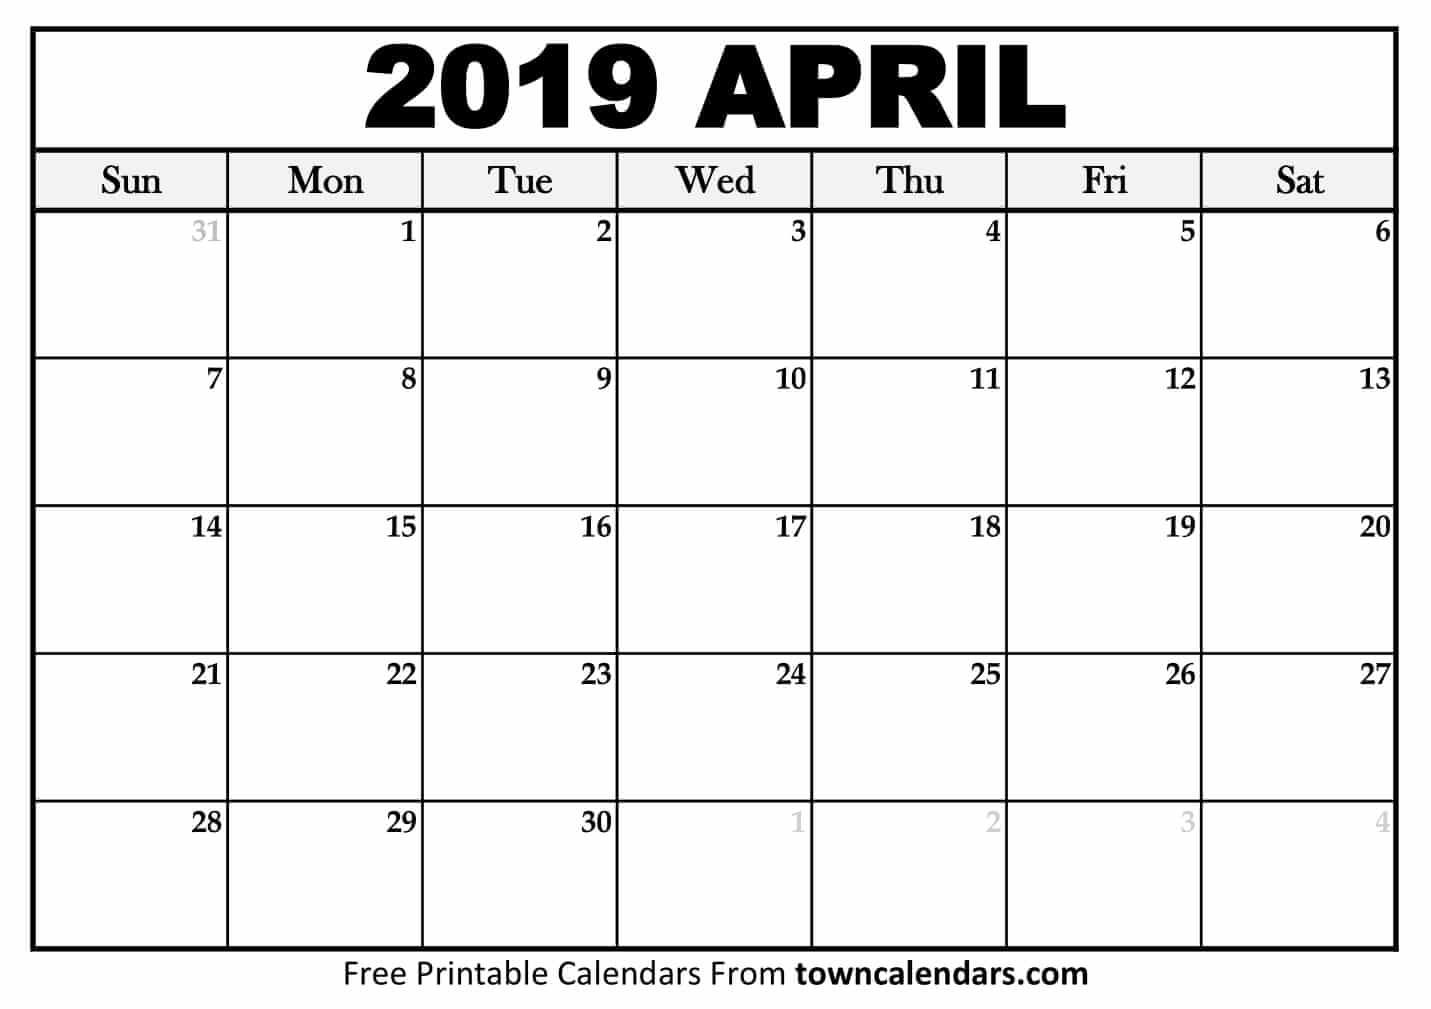 Printable April 2019 Calendar - Towncalendars Calendar April 6 2019